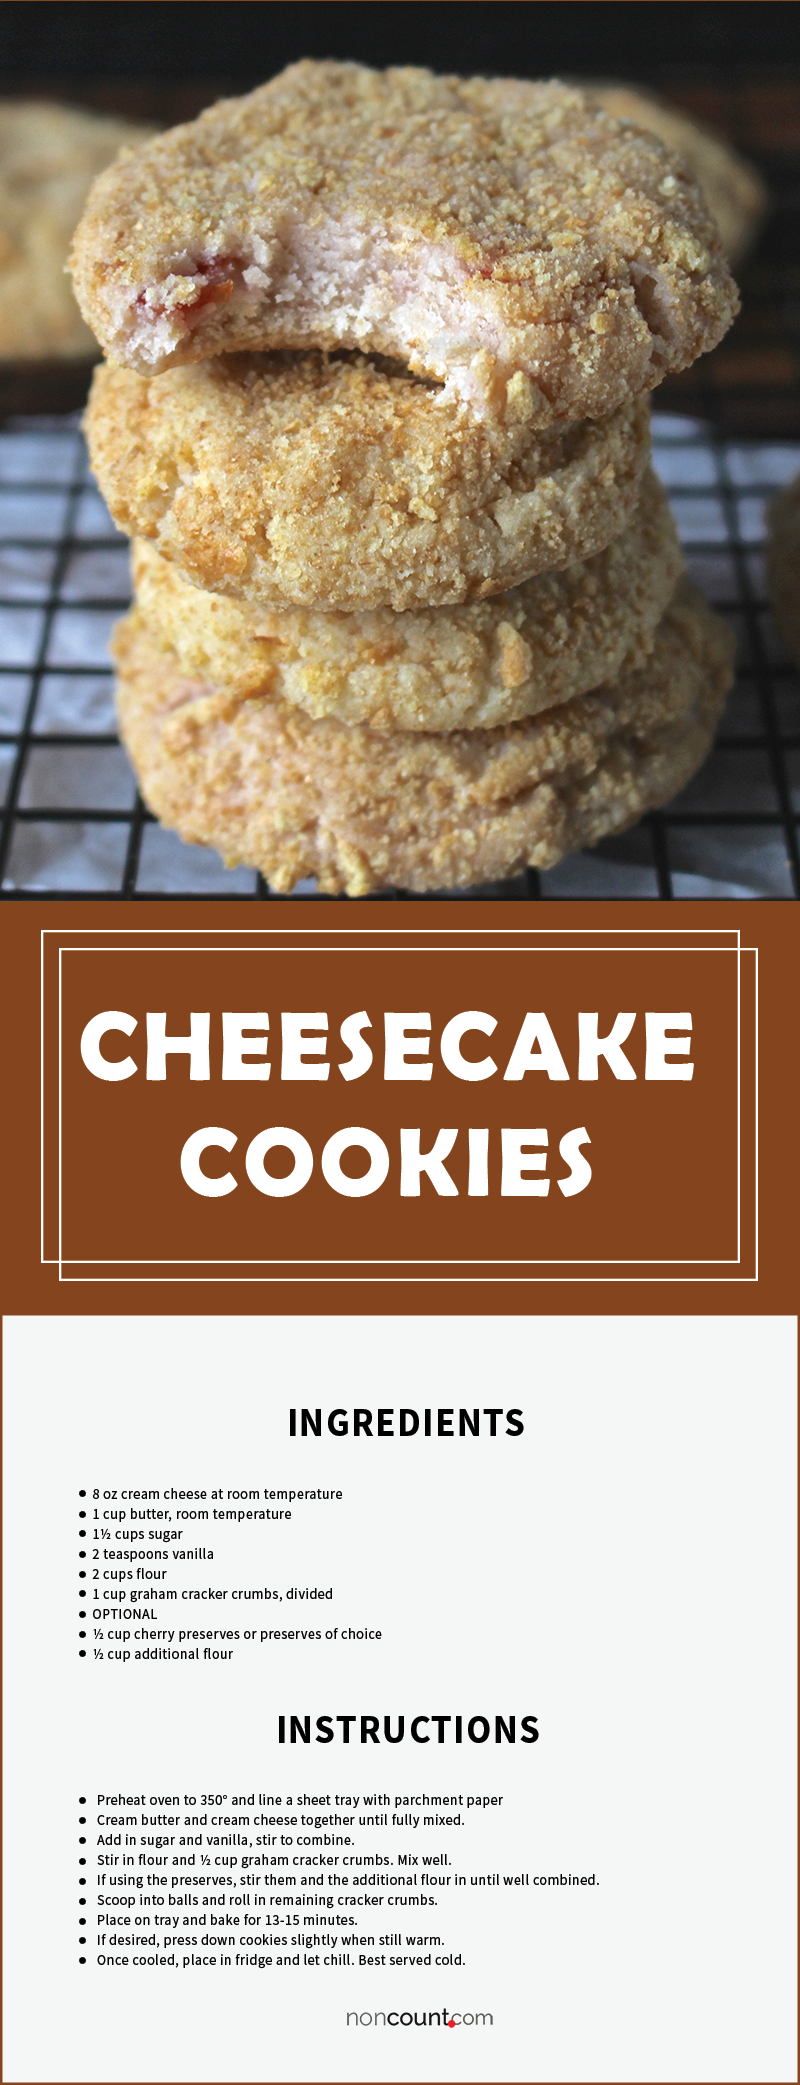 Cheesecake Cookies Recipe Image